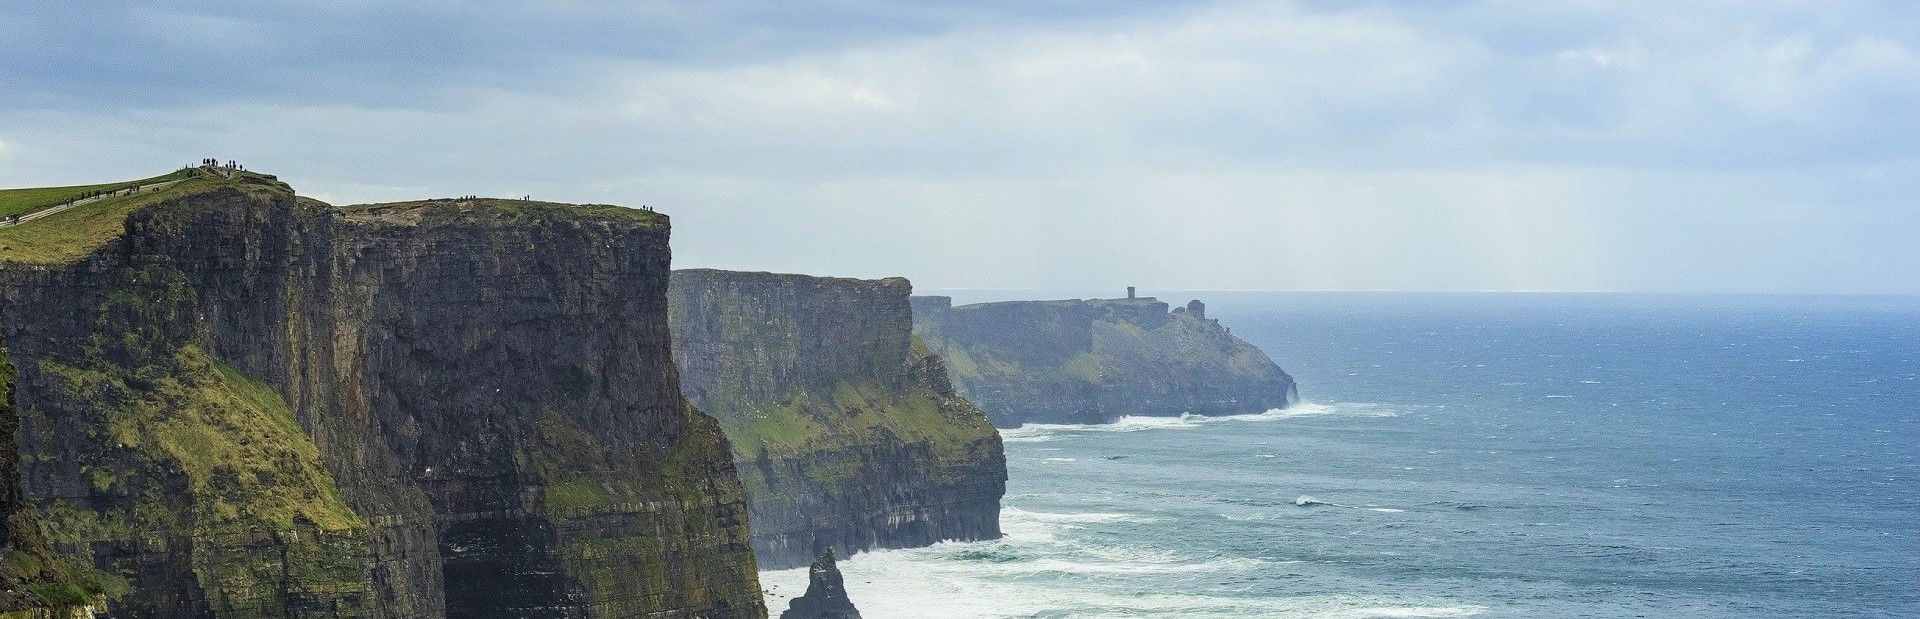 Ireland Cliffs_of_Moher_-_Unsplash 2